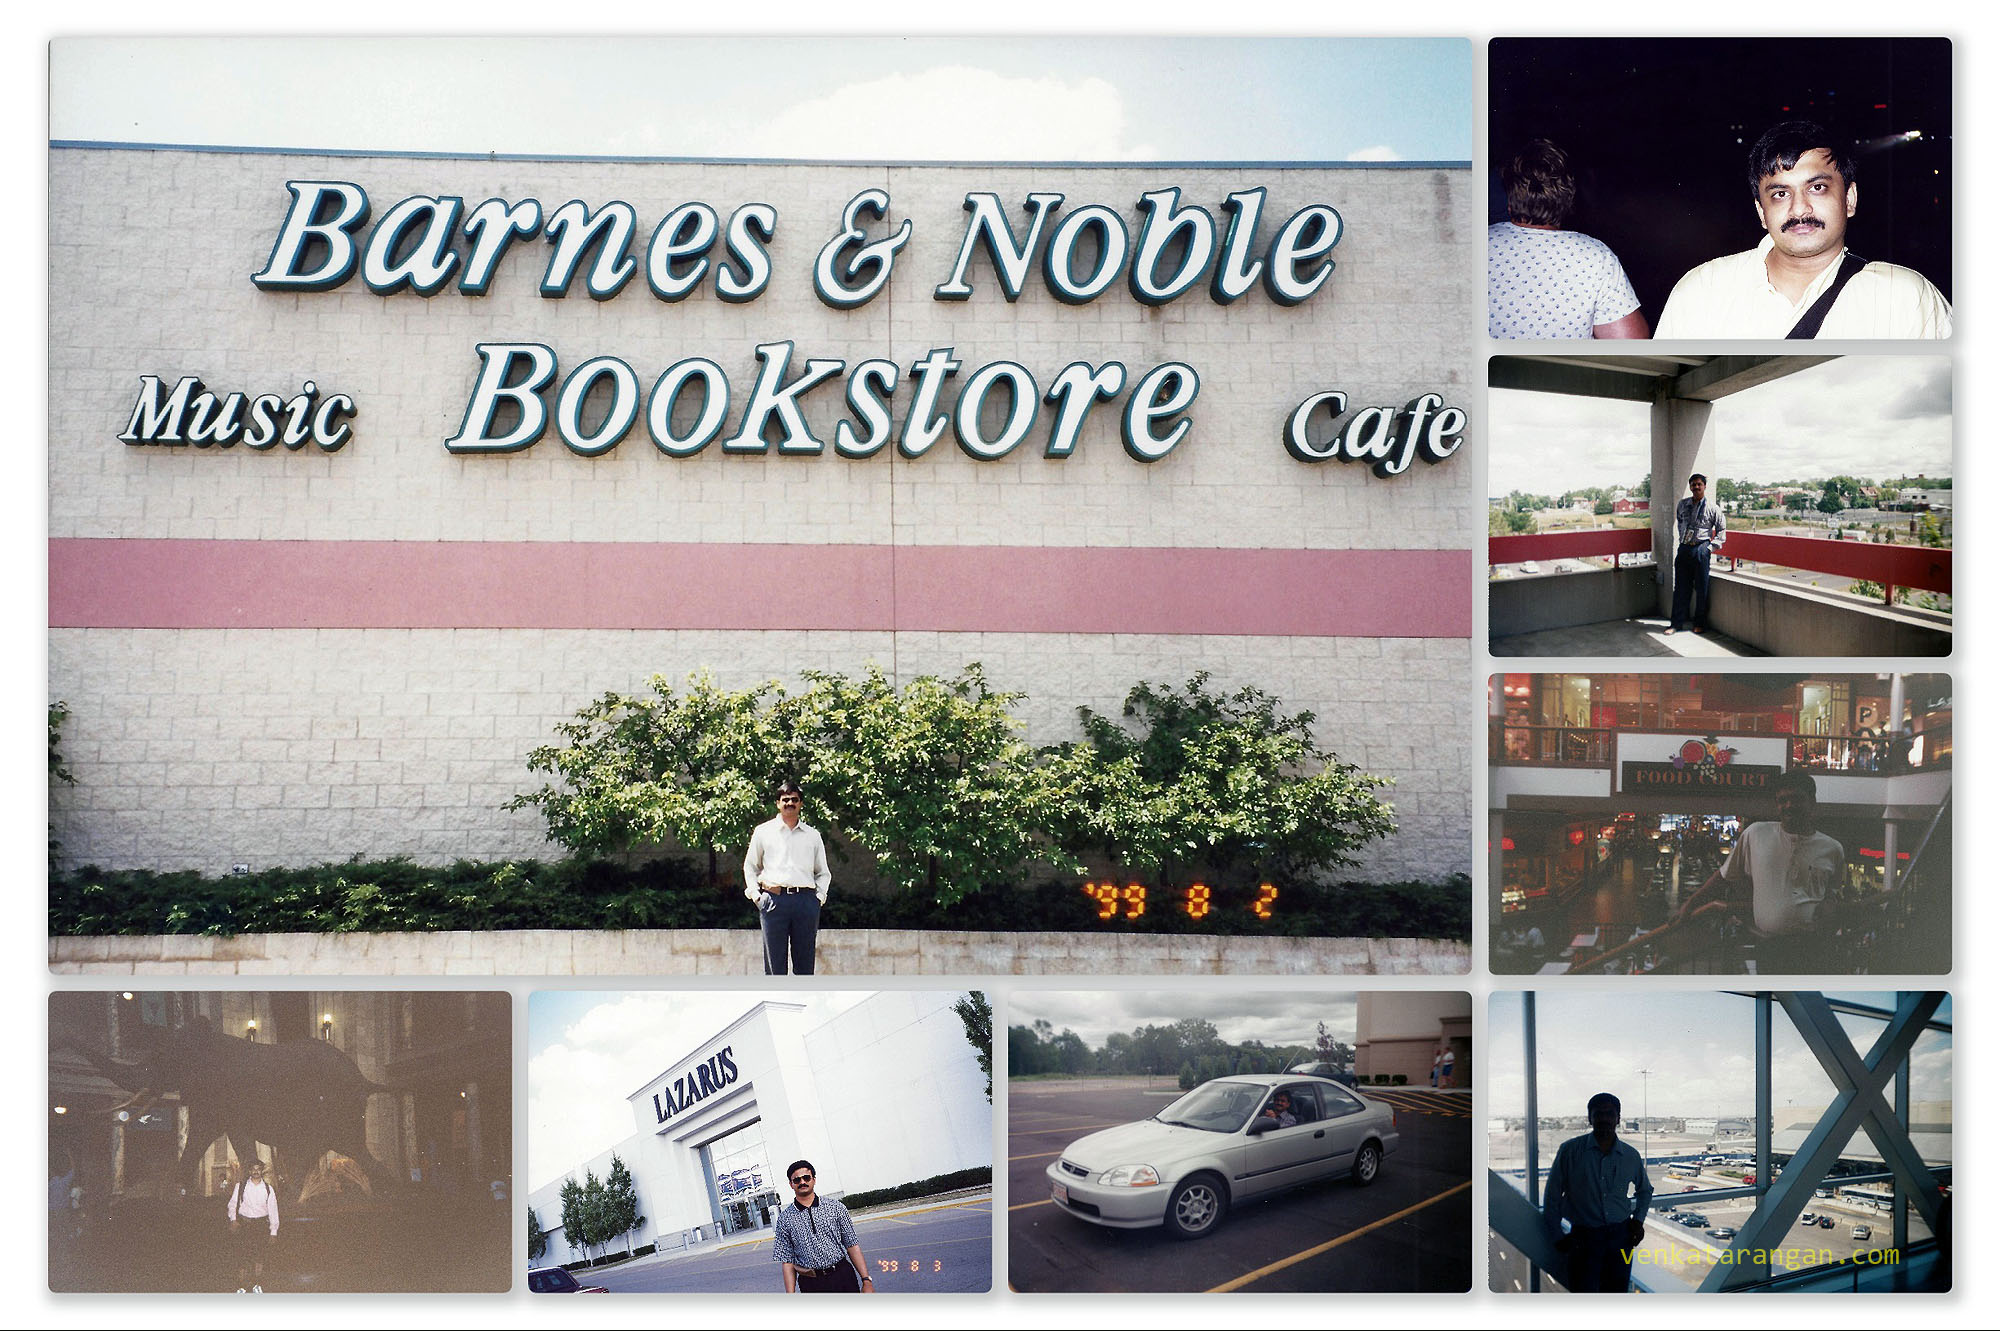 A mall and Barnes & Noble Store in 1999